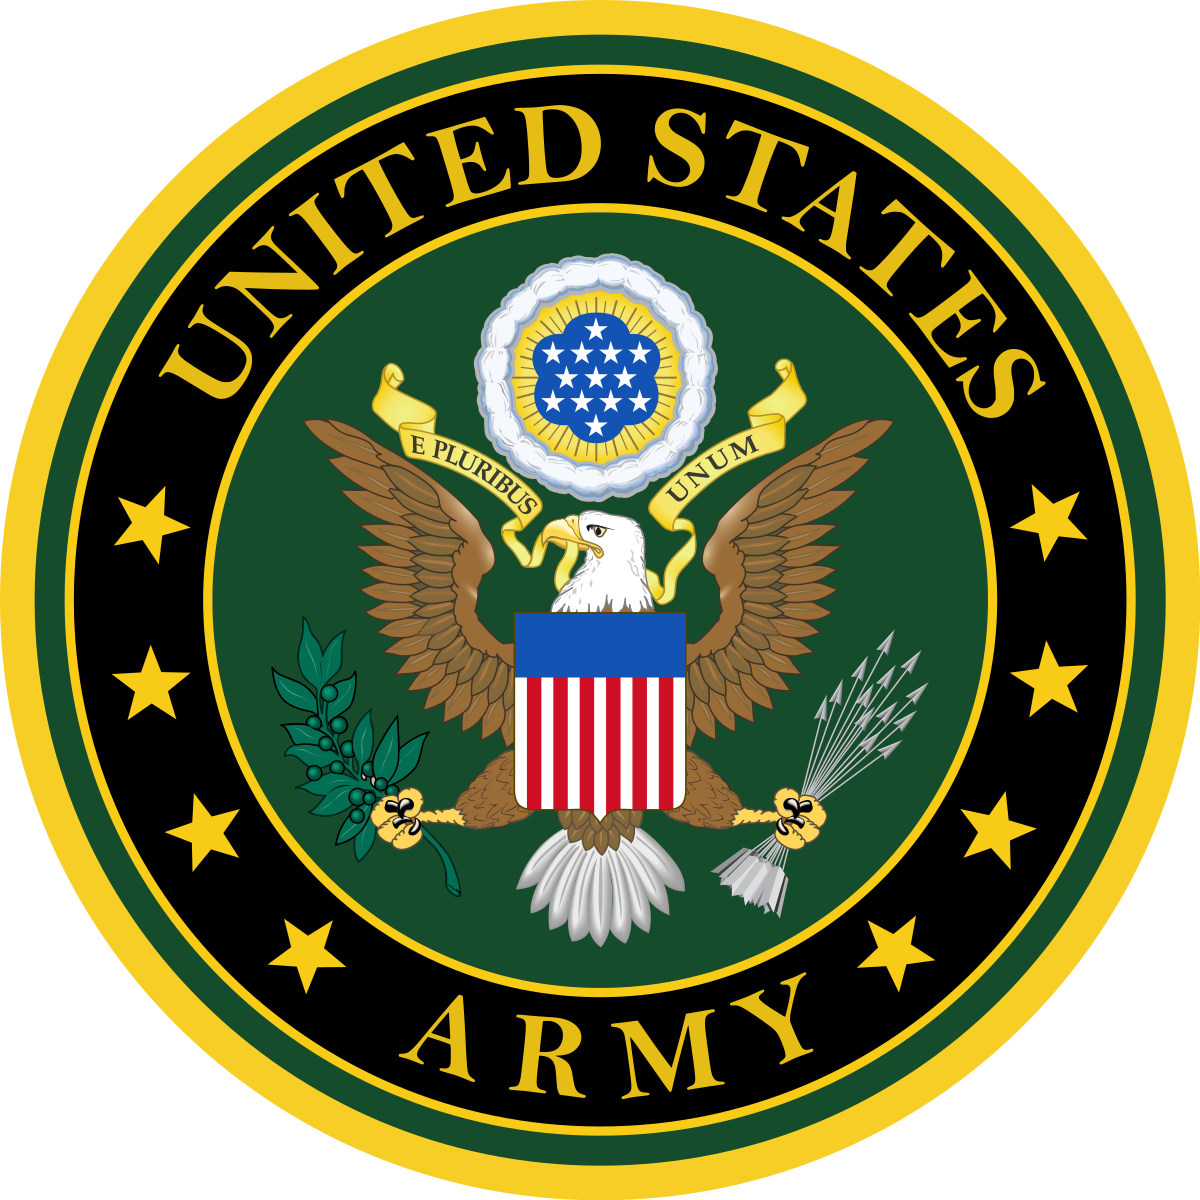 United States Army.